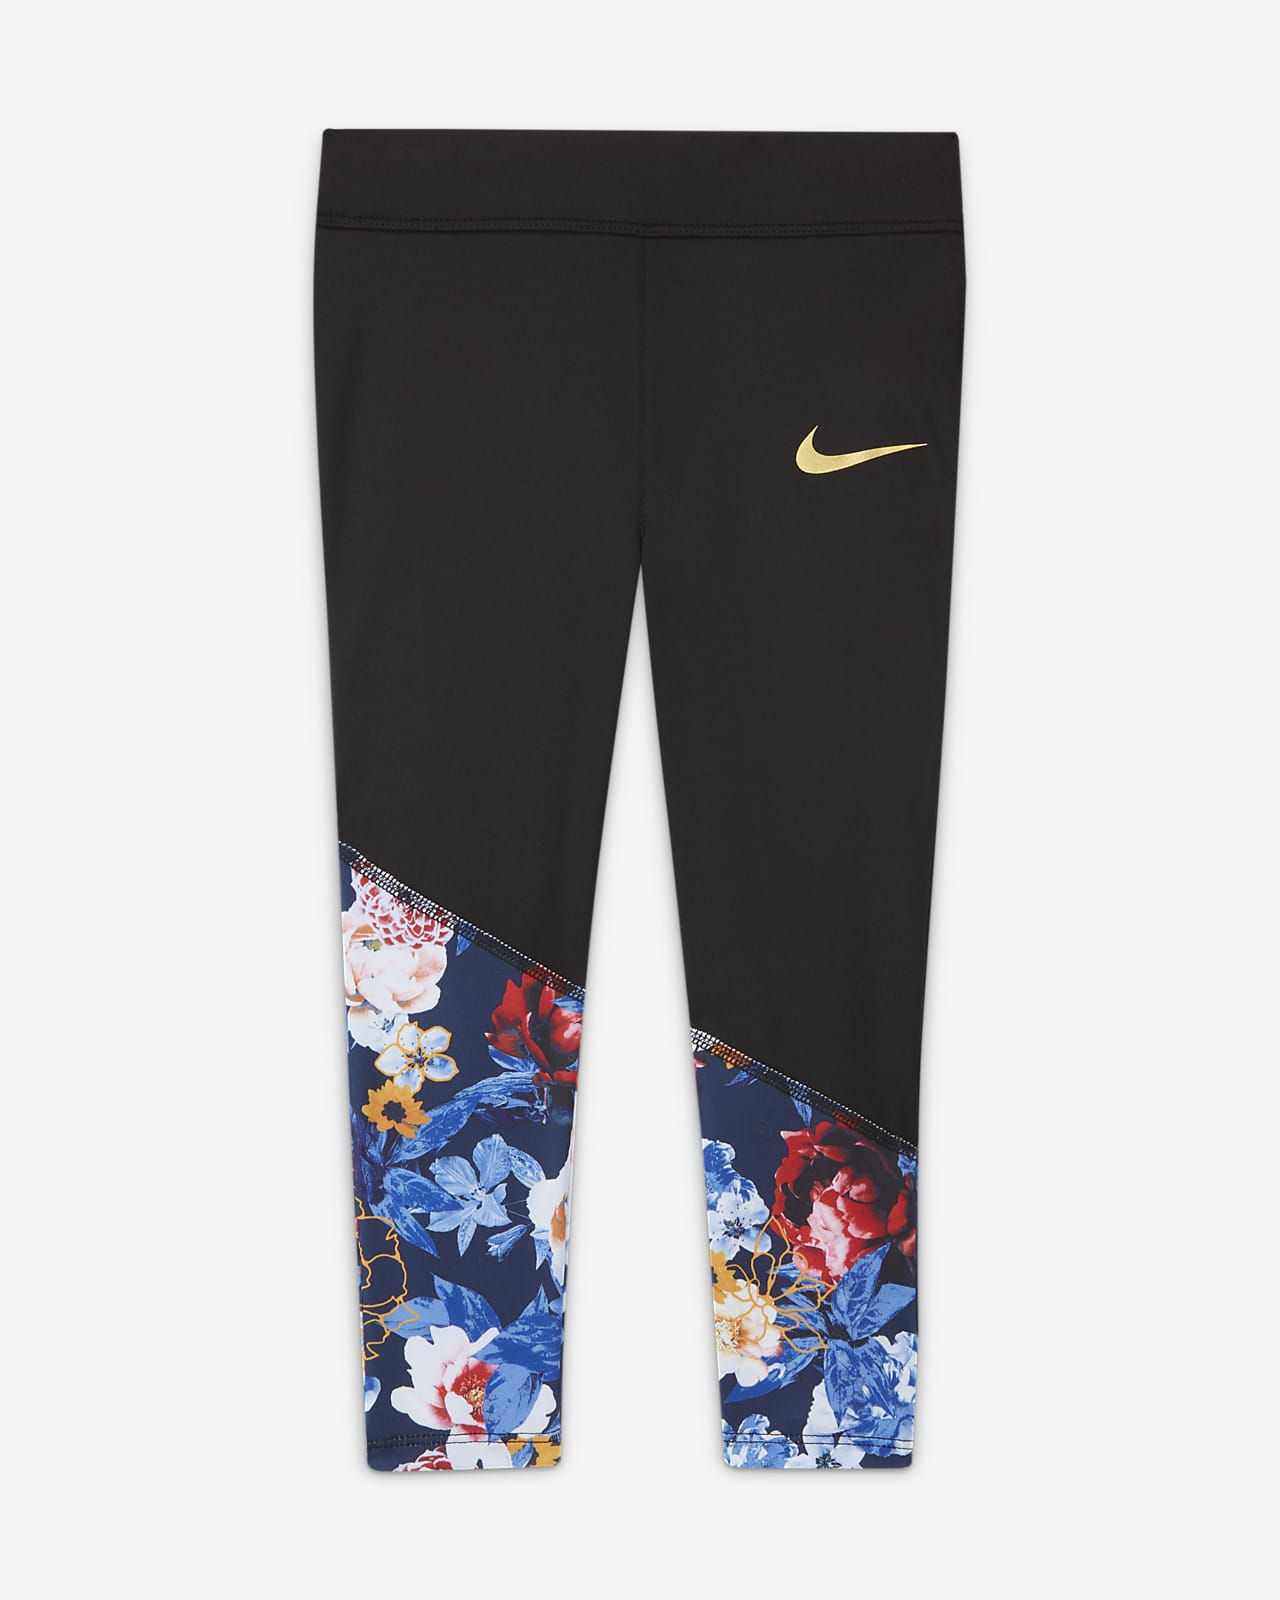 Nike Dri-FIT-caprileggings til småbørn